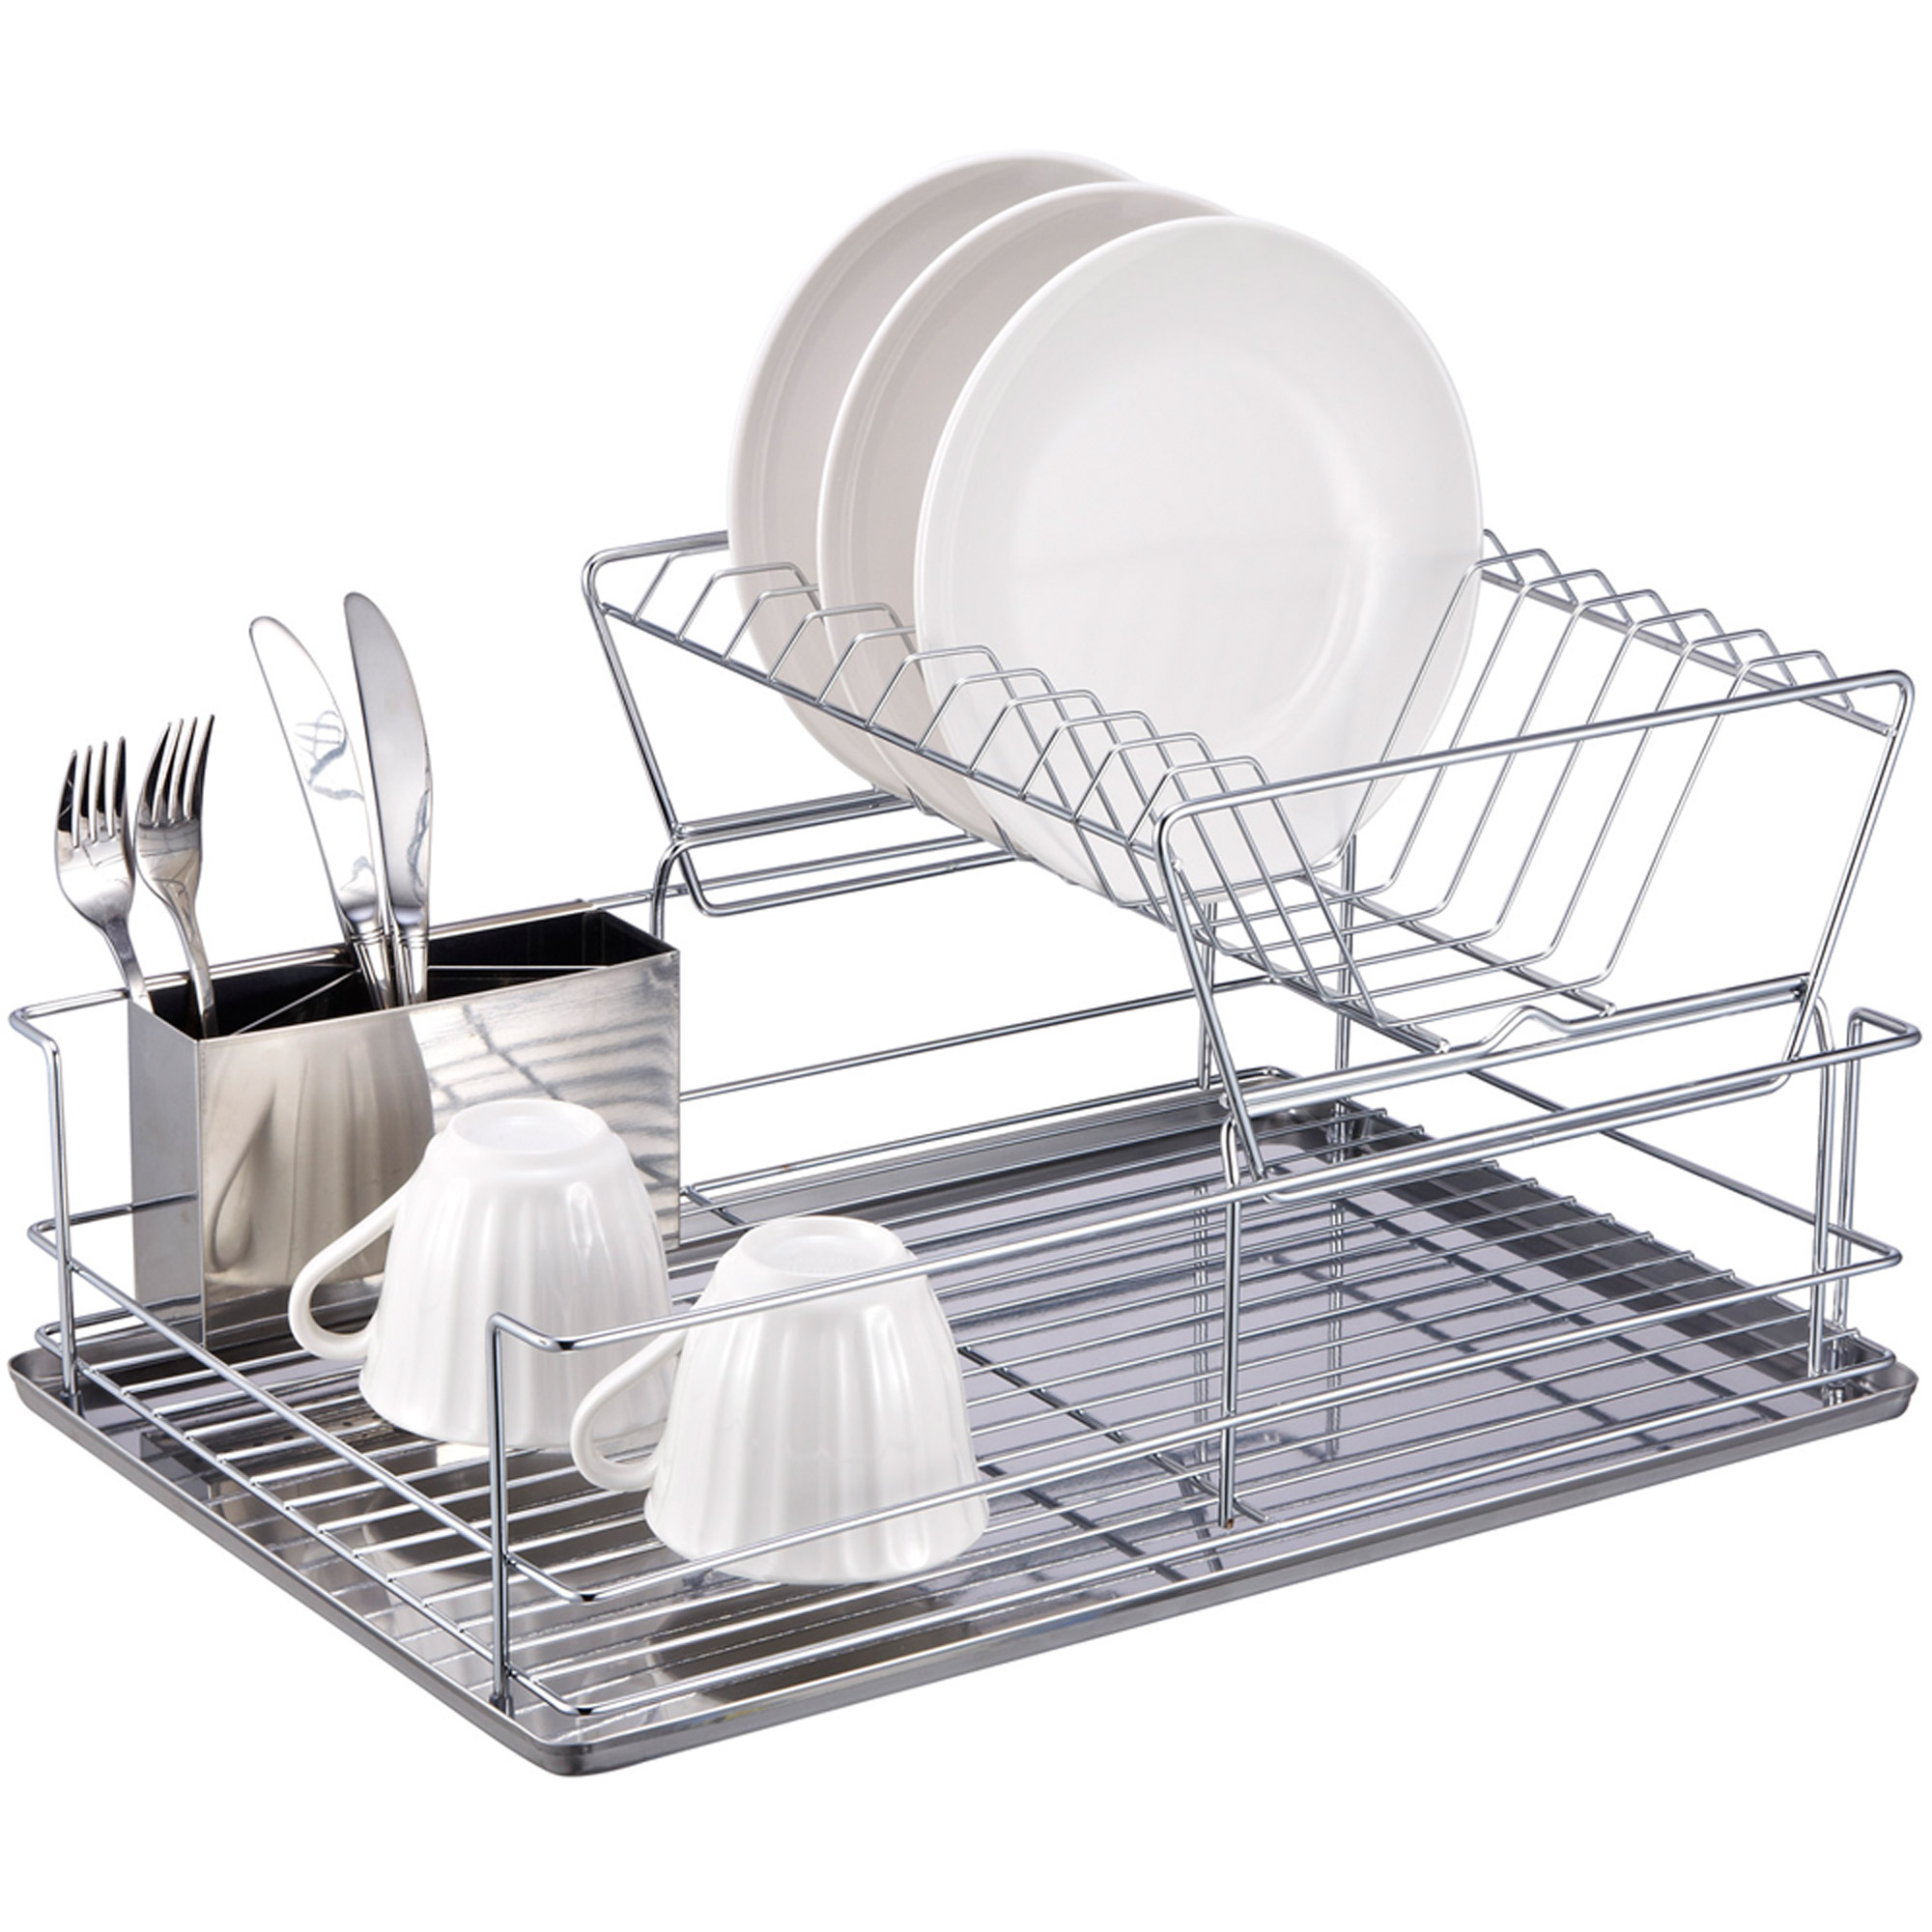 Kitchen Dish Rack 2 Tier Dish Rack Chrome Stainless Steel Walmartcom